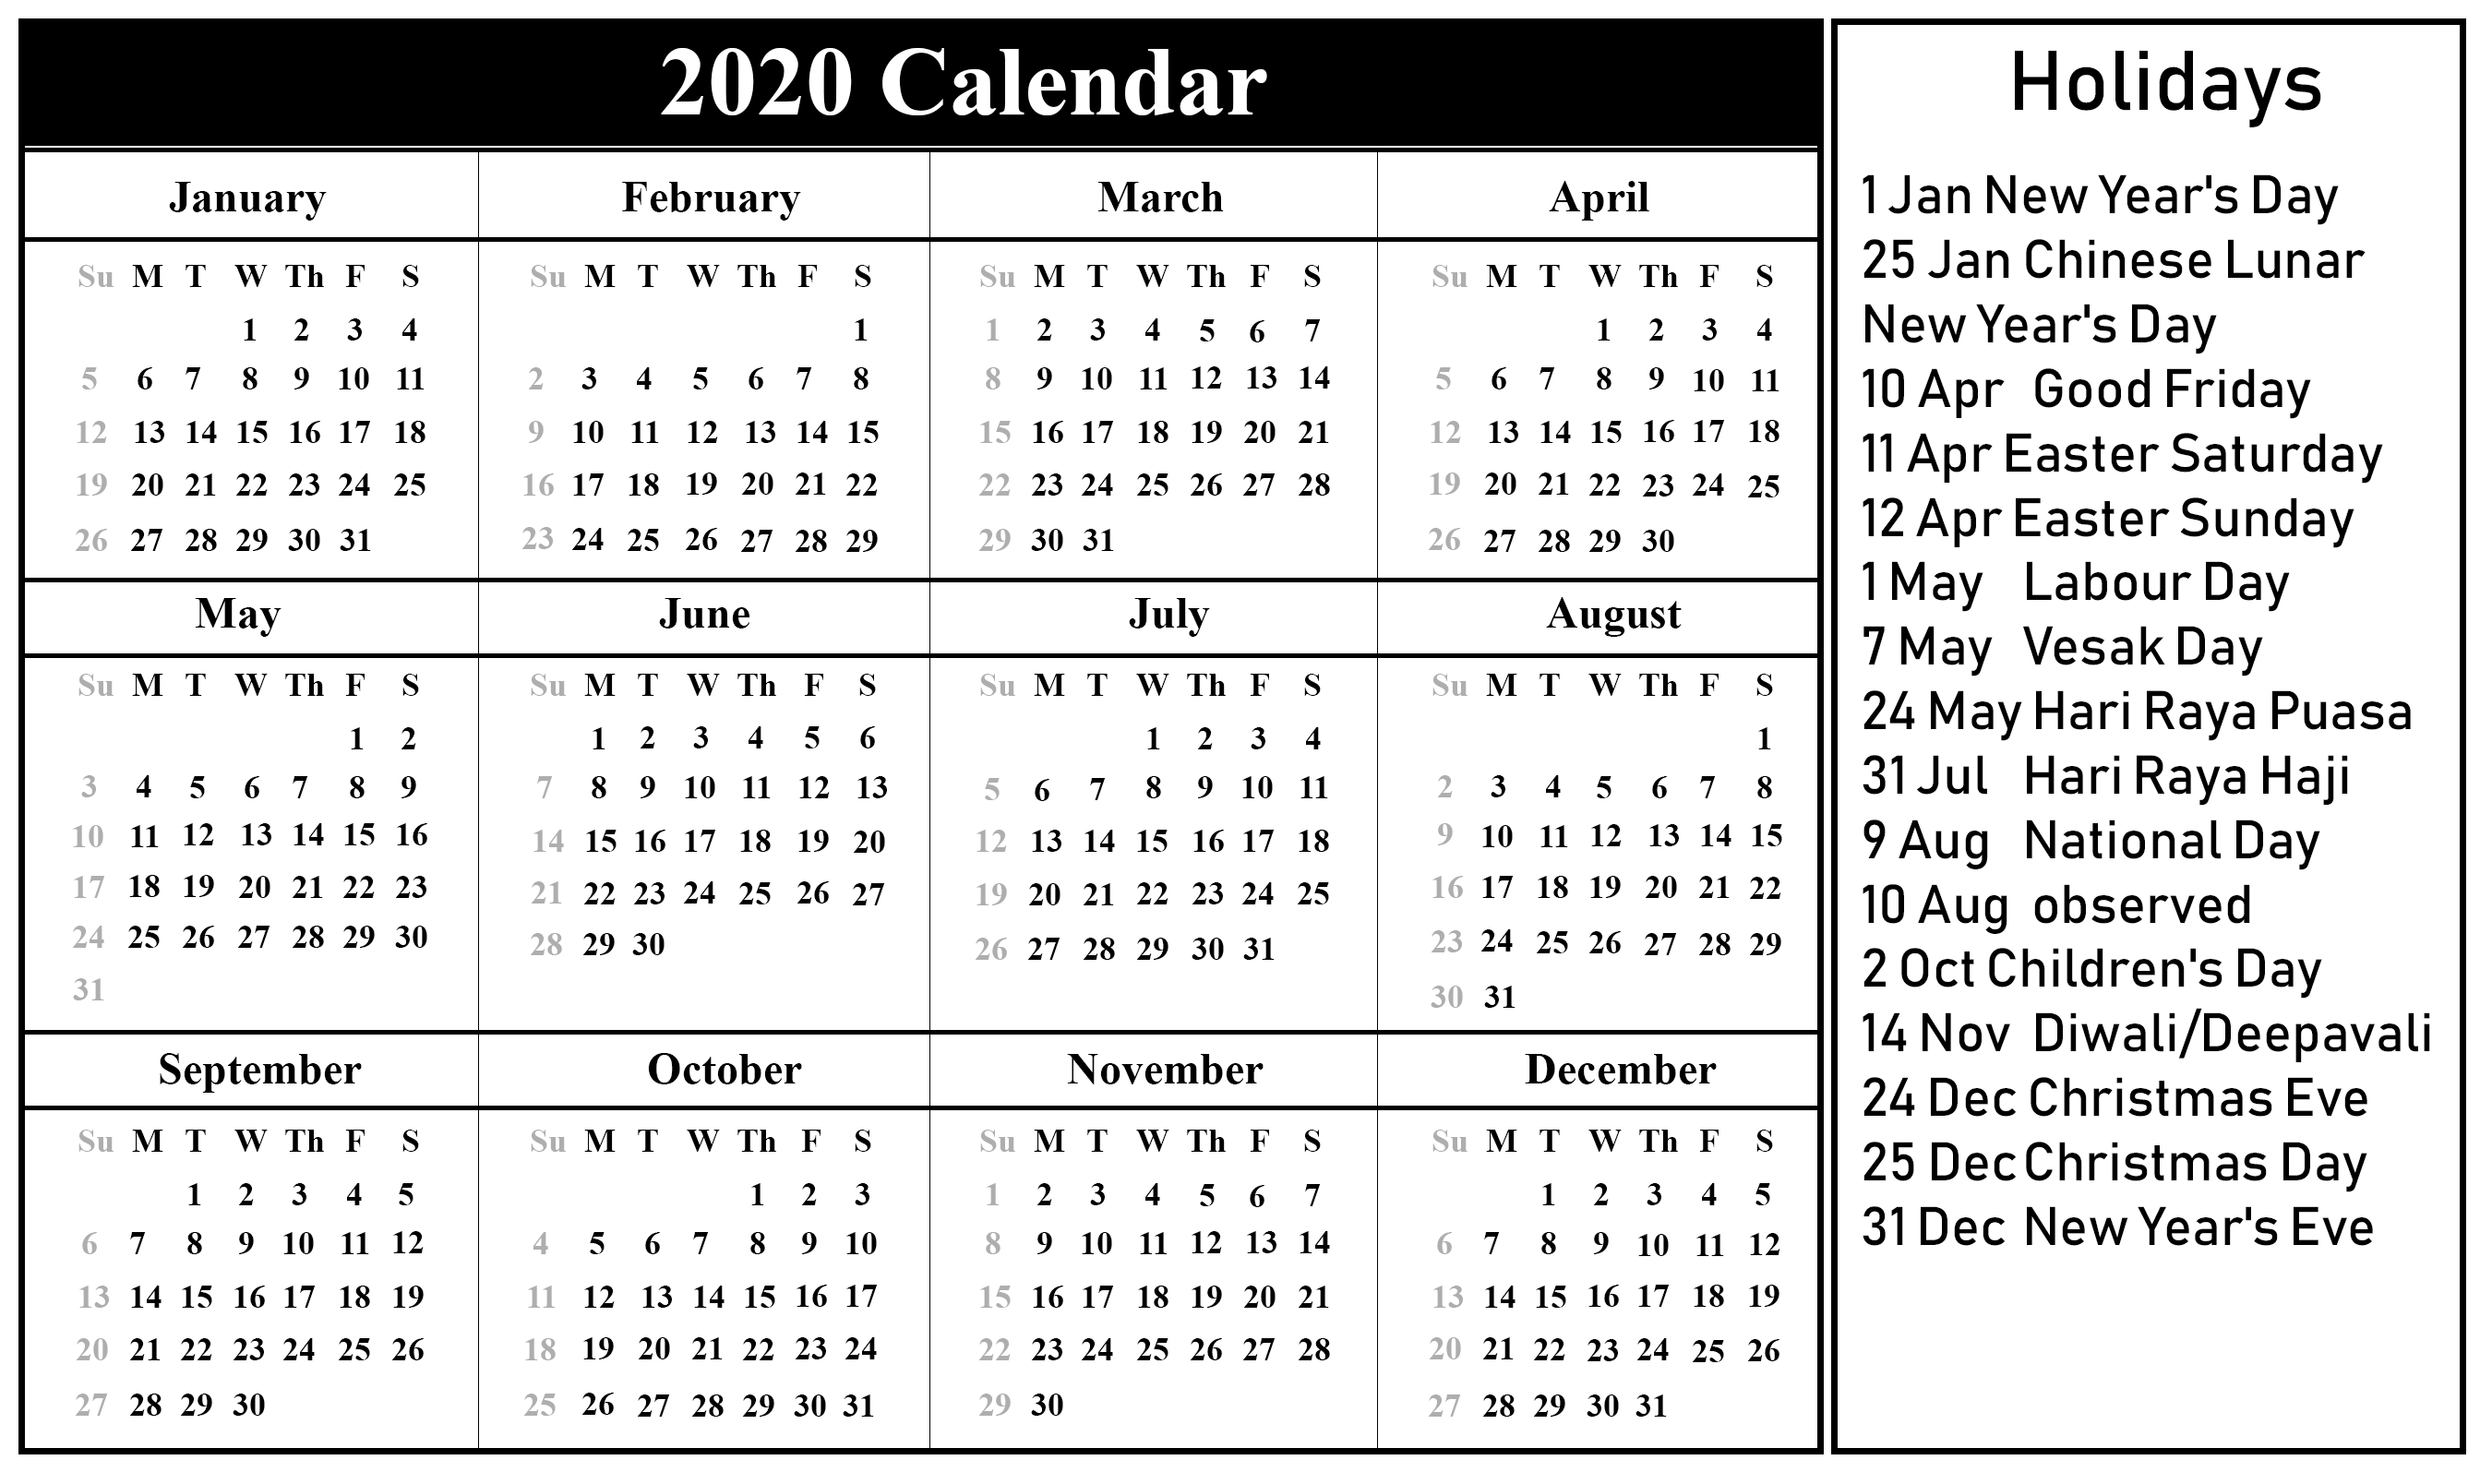 Printable 2020 Calendar With Holidays | Monthly Calendar within Calendar Of Special Days 2020